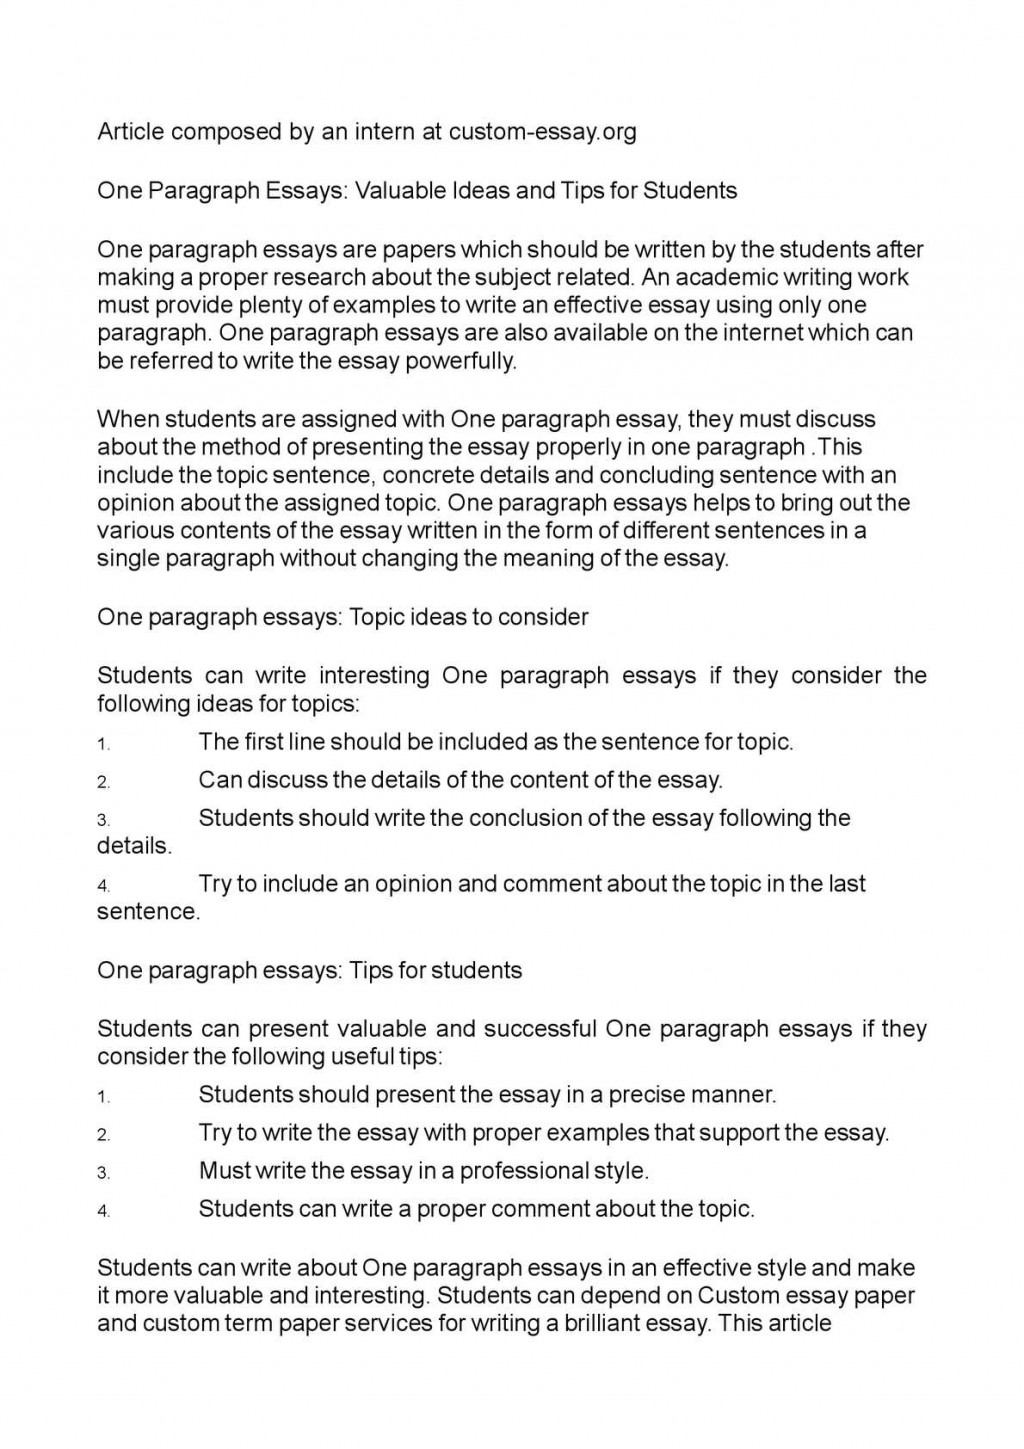 007 One Paragraph Essay P1 Awesome About Dwarfism Topics Large